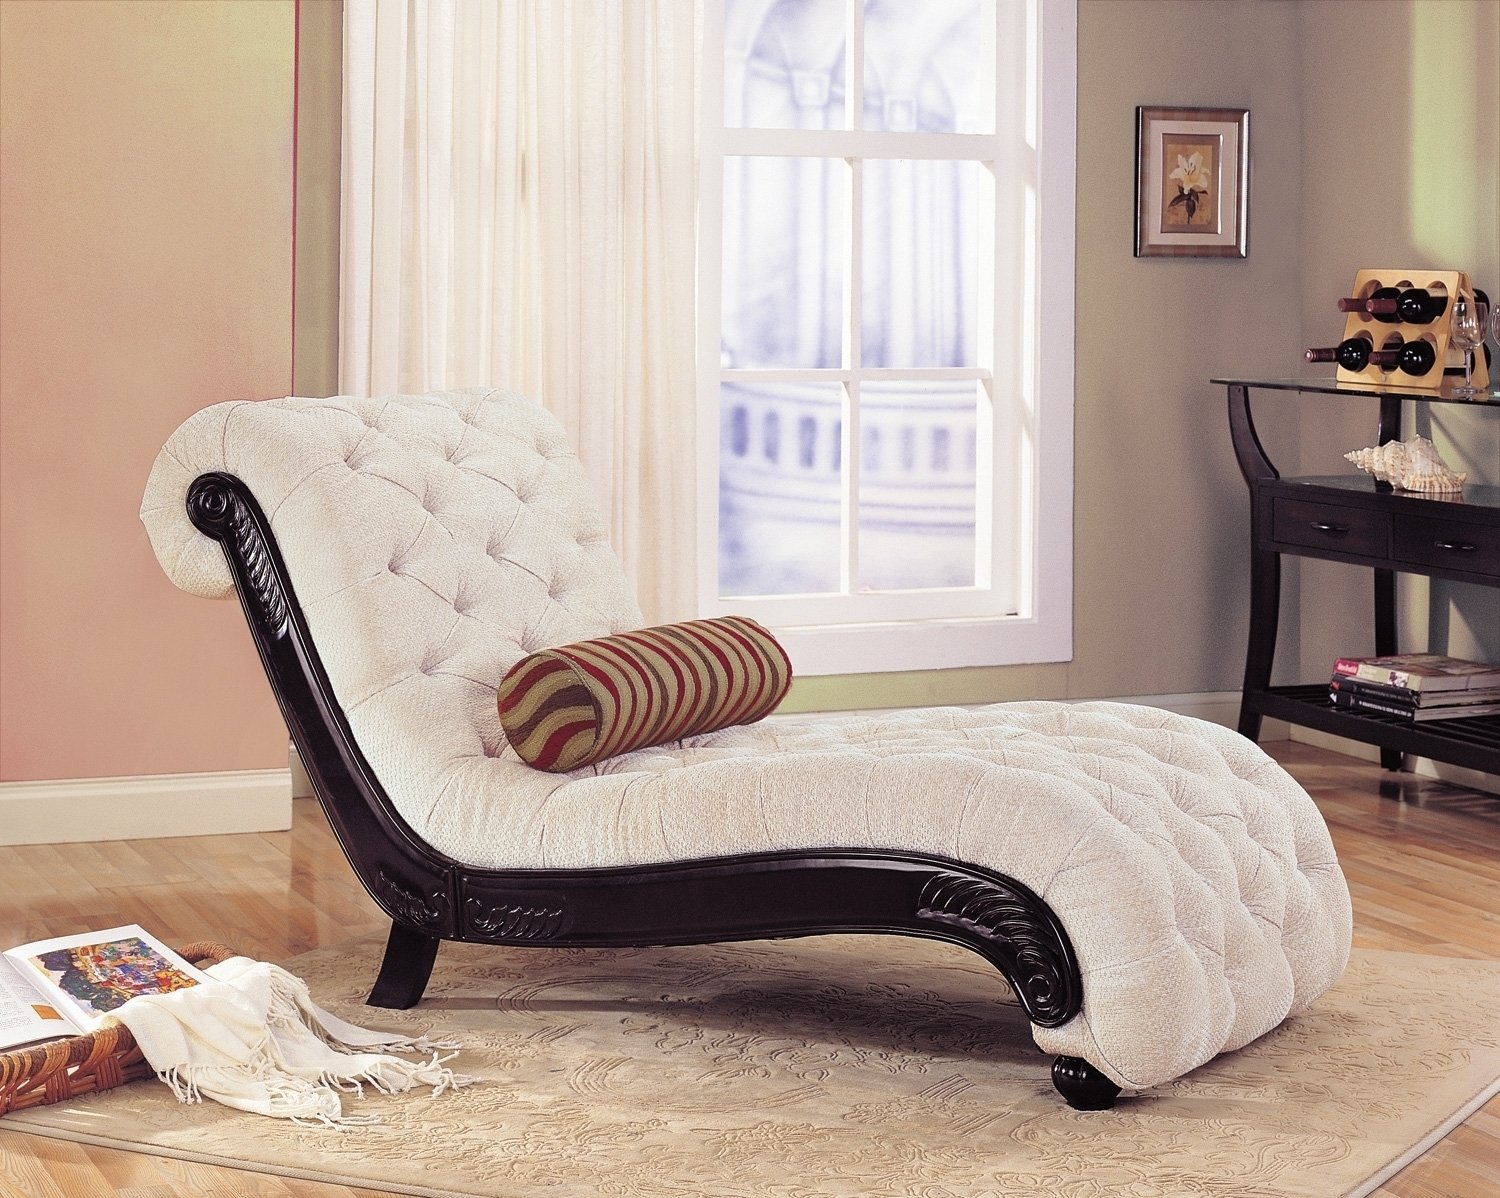 Lounge Chairs For Bedroom - Visual Hunt